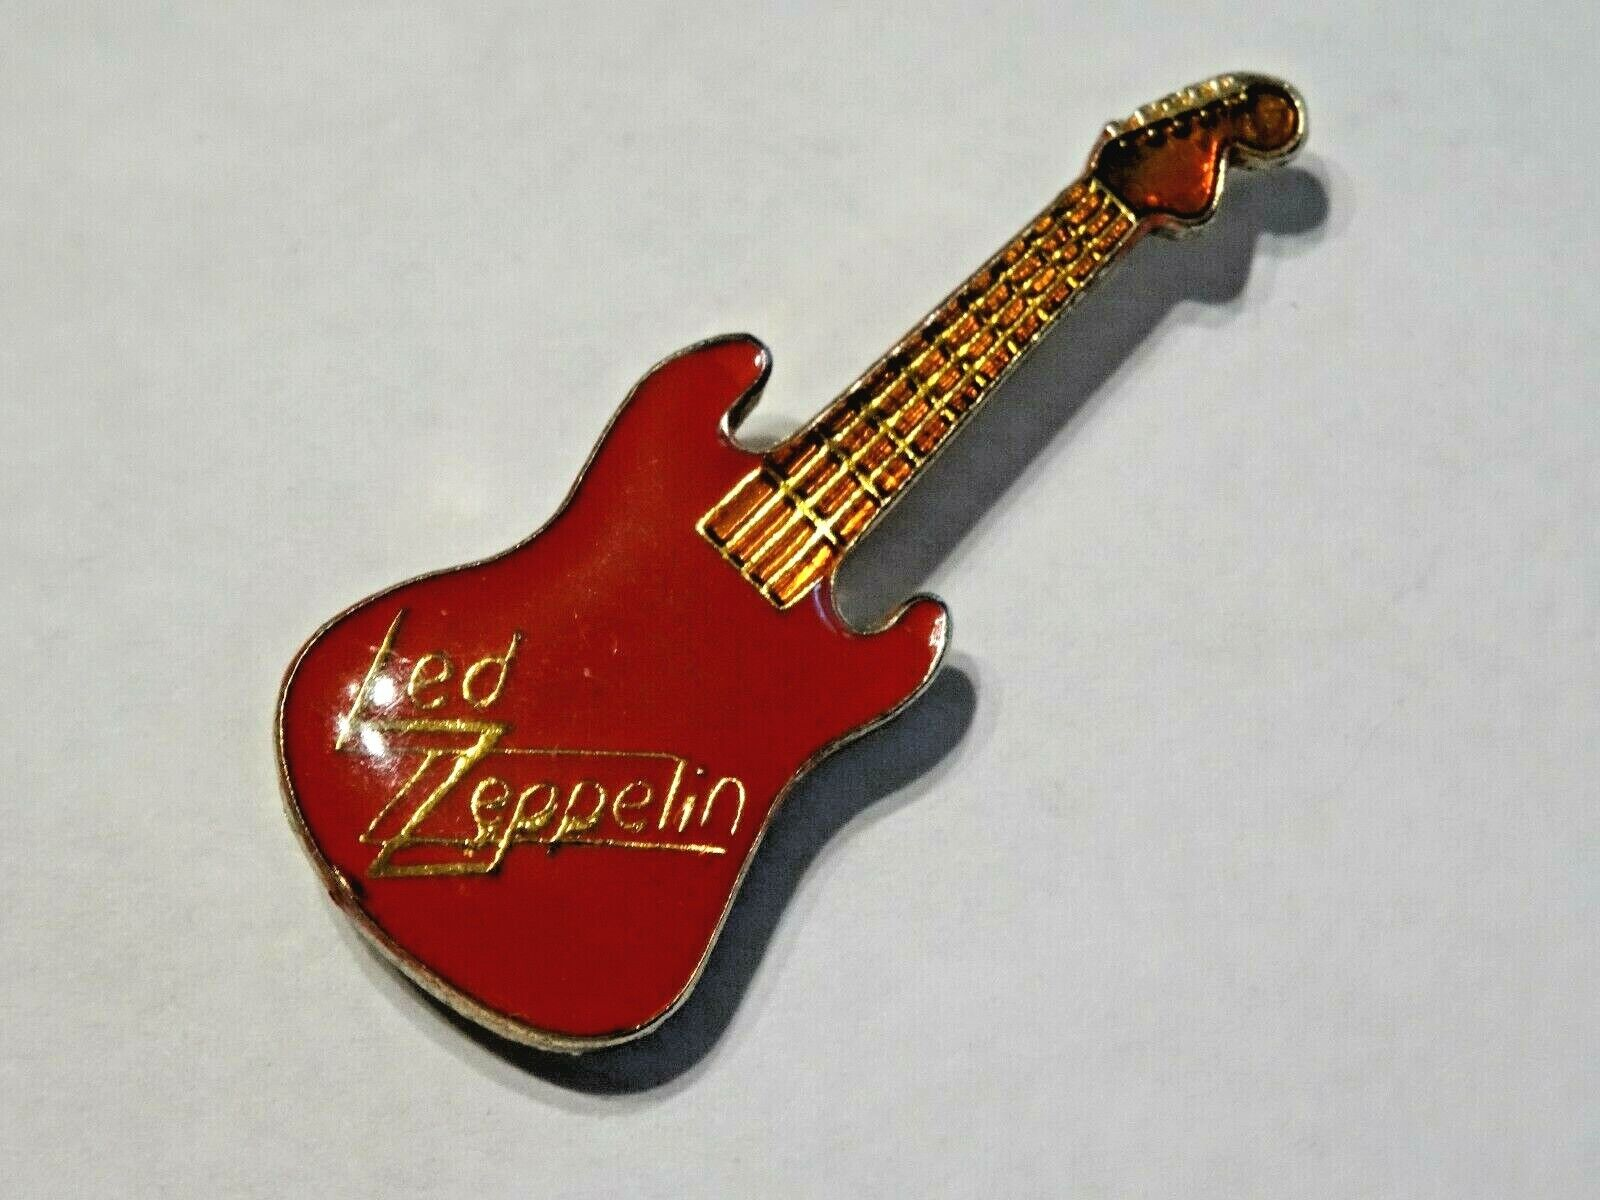 LED ZEPPELIN COLLECTIBLE 1980 S PIN RED ENAMEL LABEL / HAT PIN - $7.99